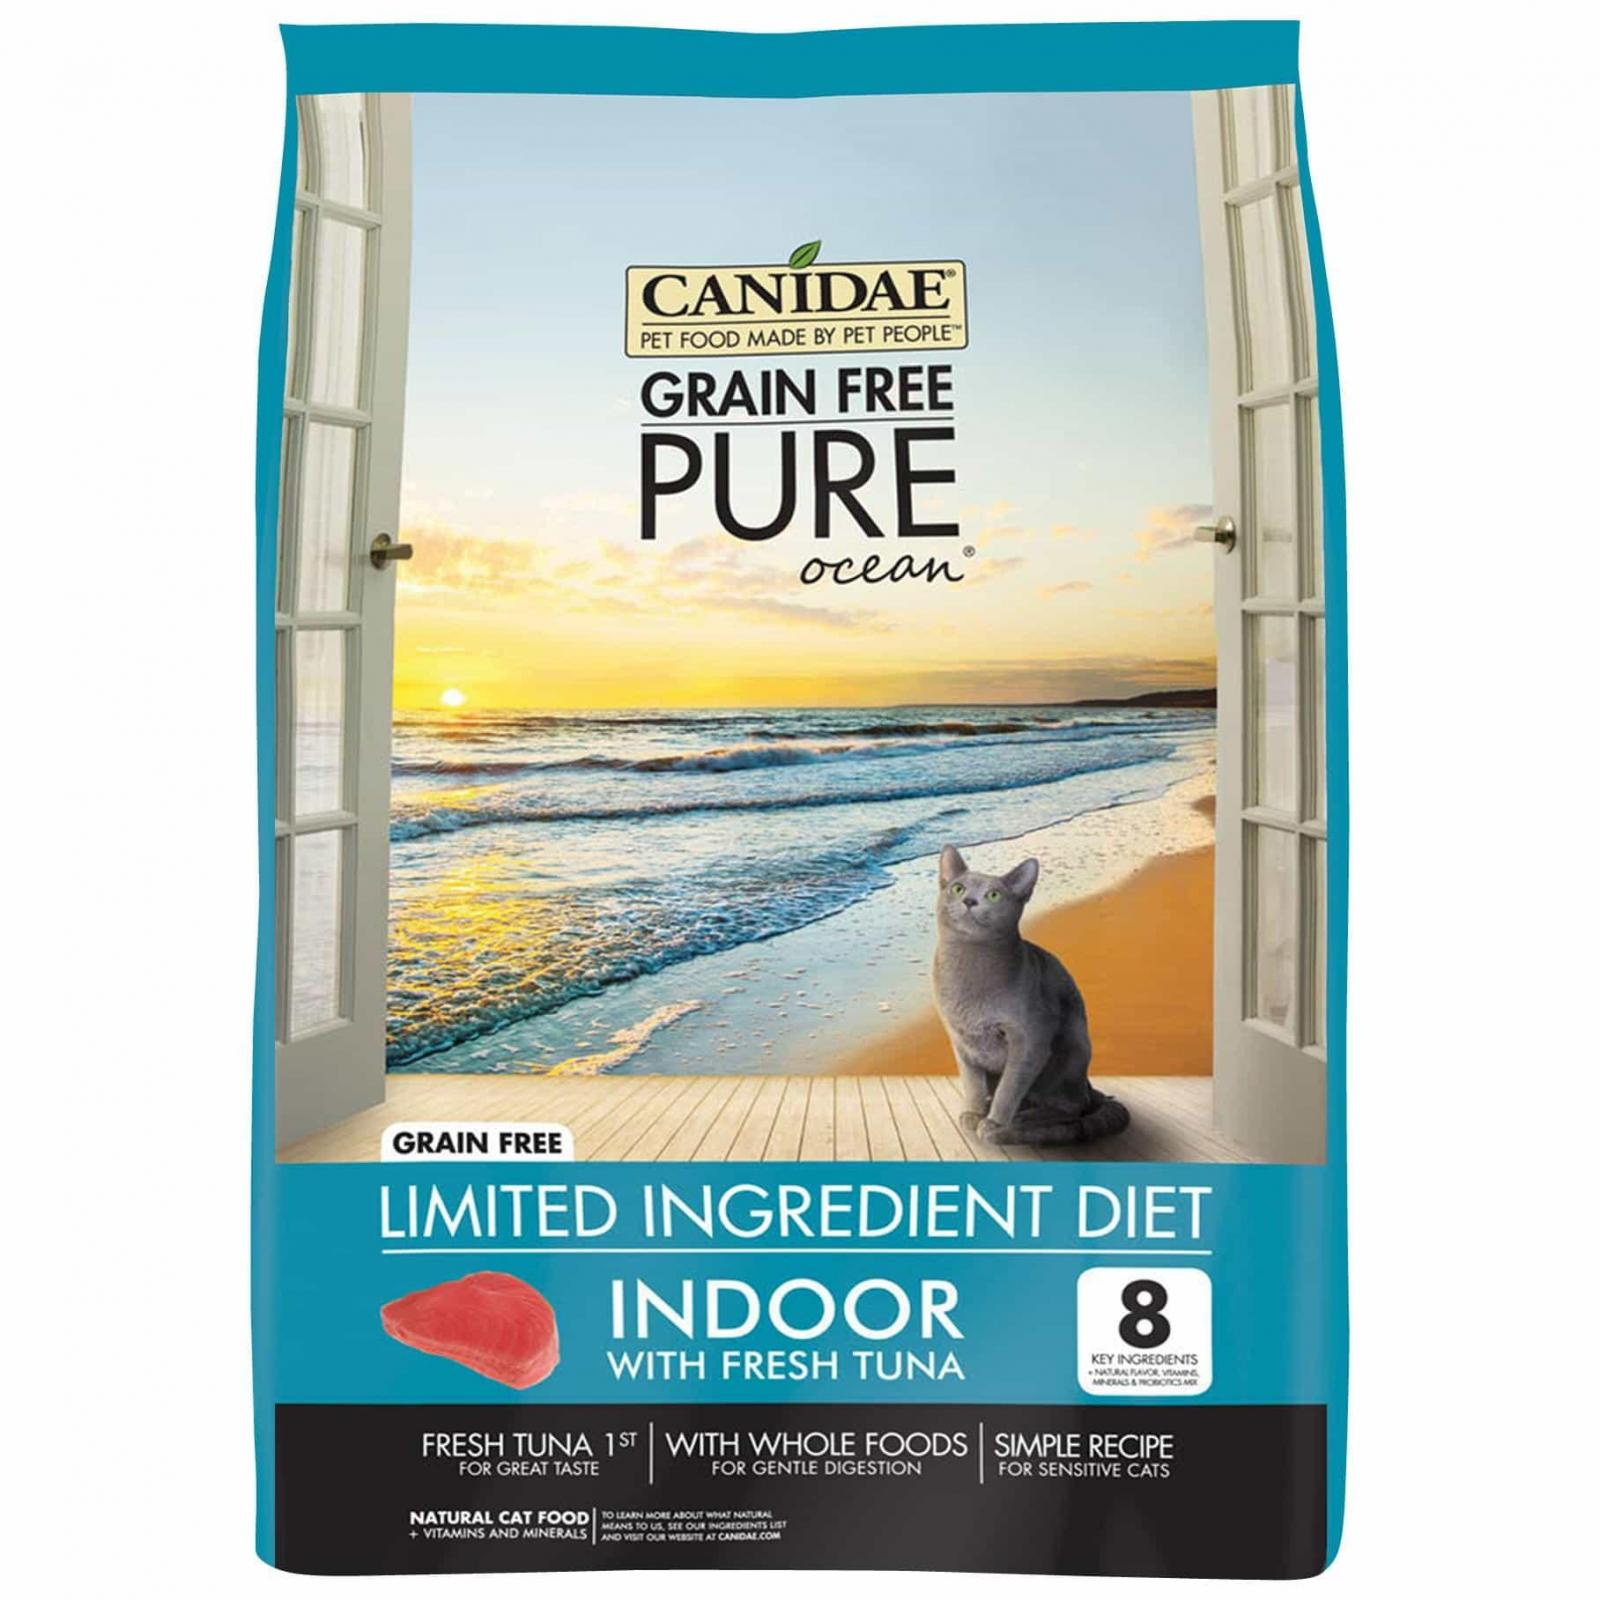 Canidae Canidae PURE Ocean Grain Free Tuna Indoor Dry Cat Food